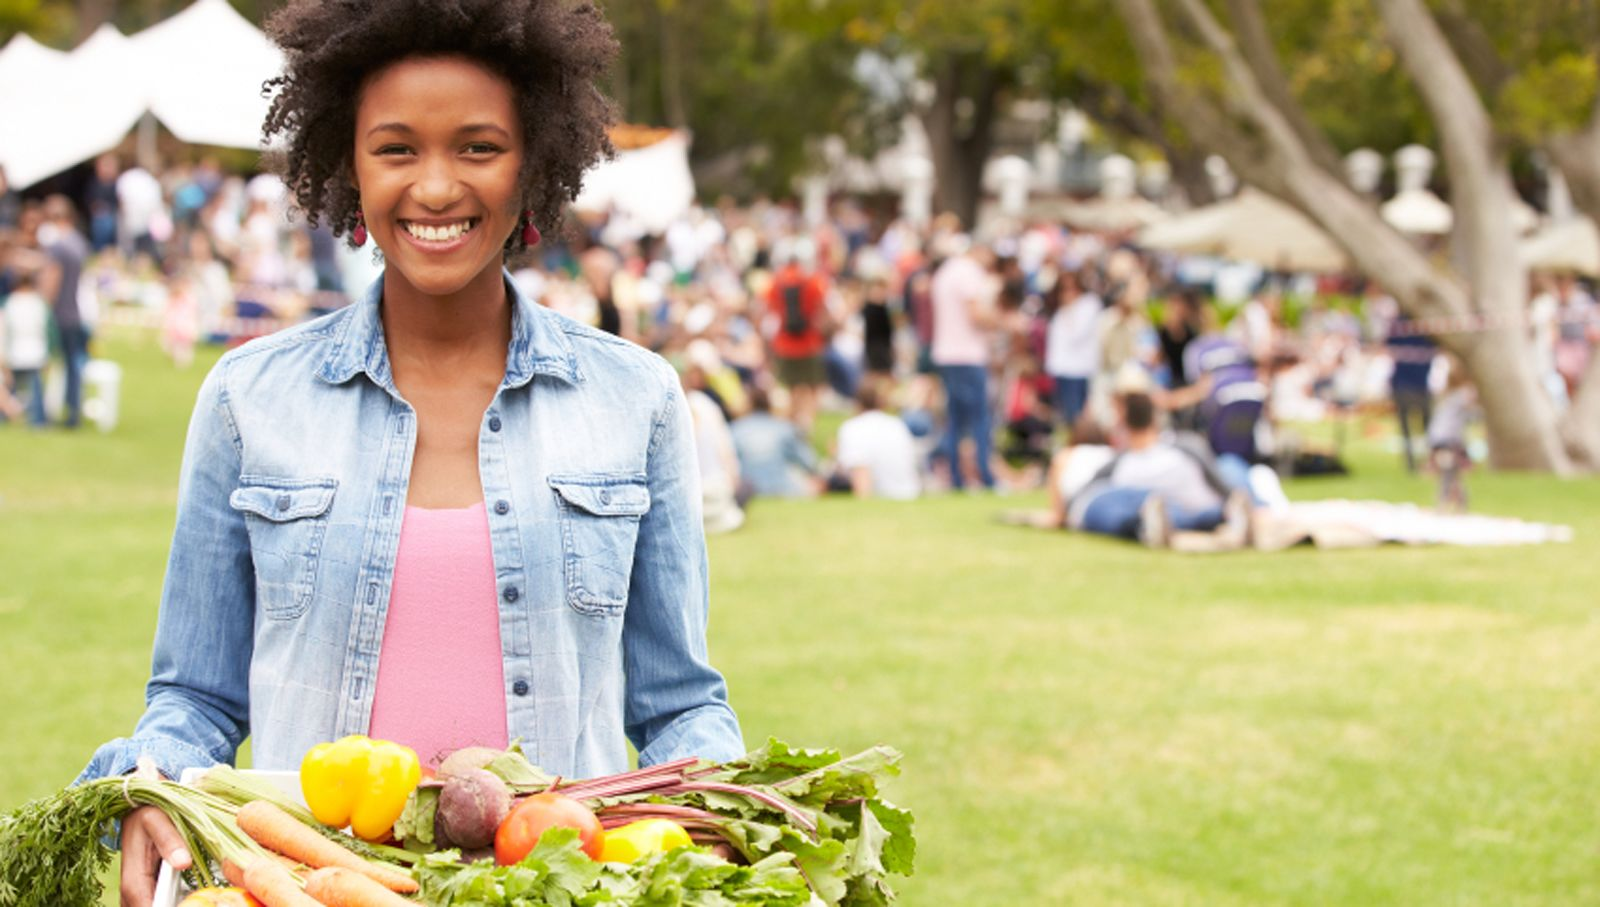 6 Foods Your Skin Will Love